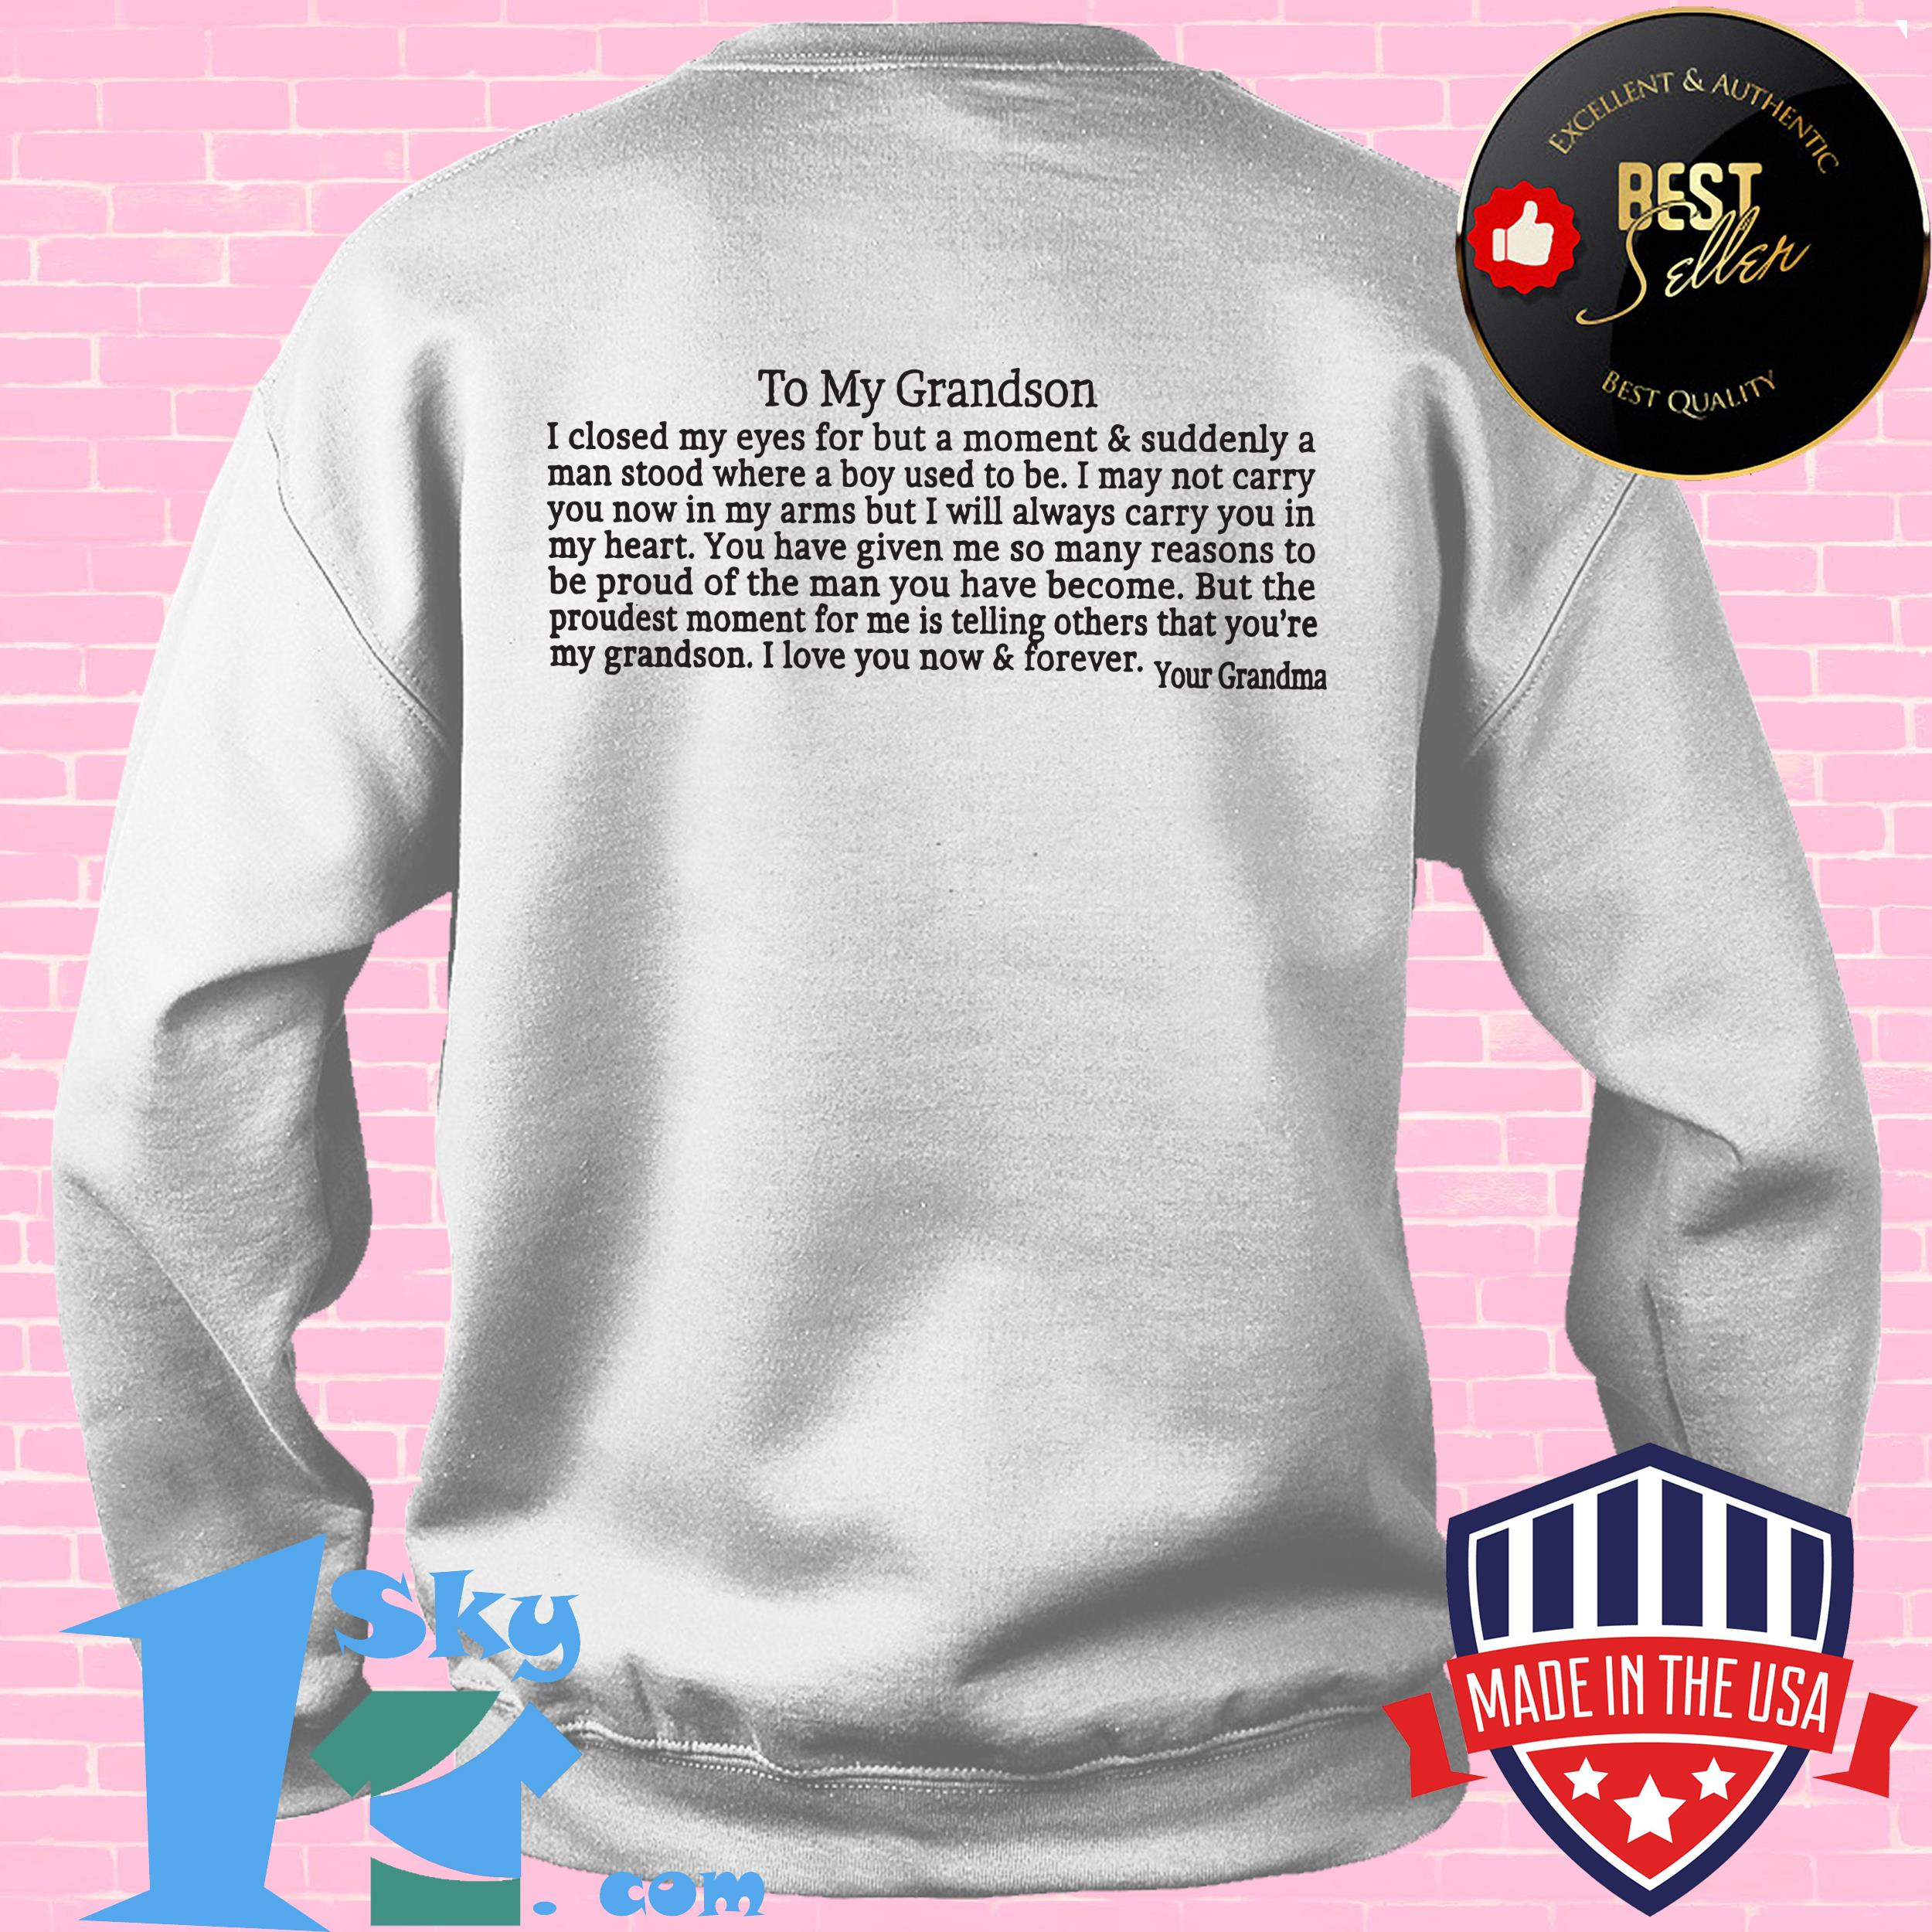 to my grandson i love you now and forever your grandma sweatshirt - To My Grandson I Love You Now and Forever Your Grandma shirt